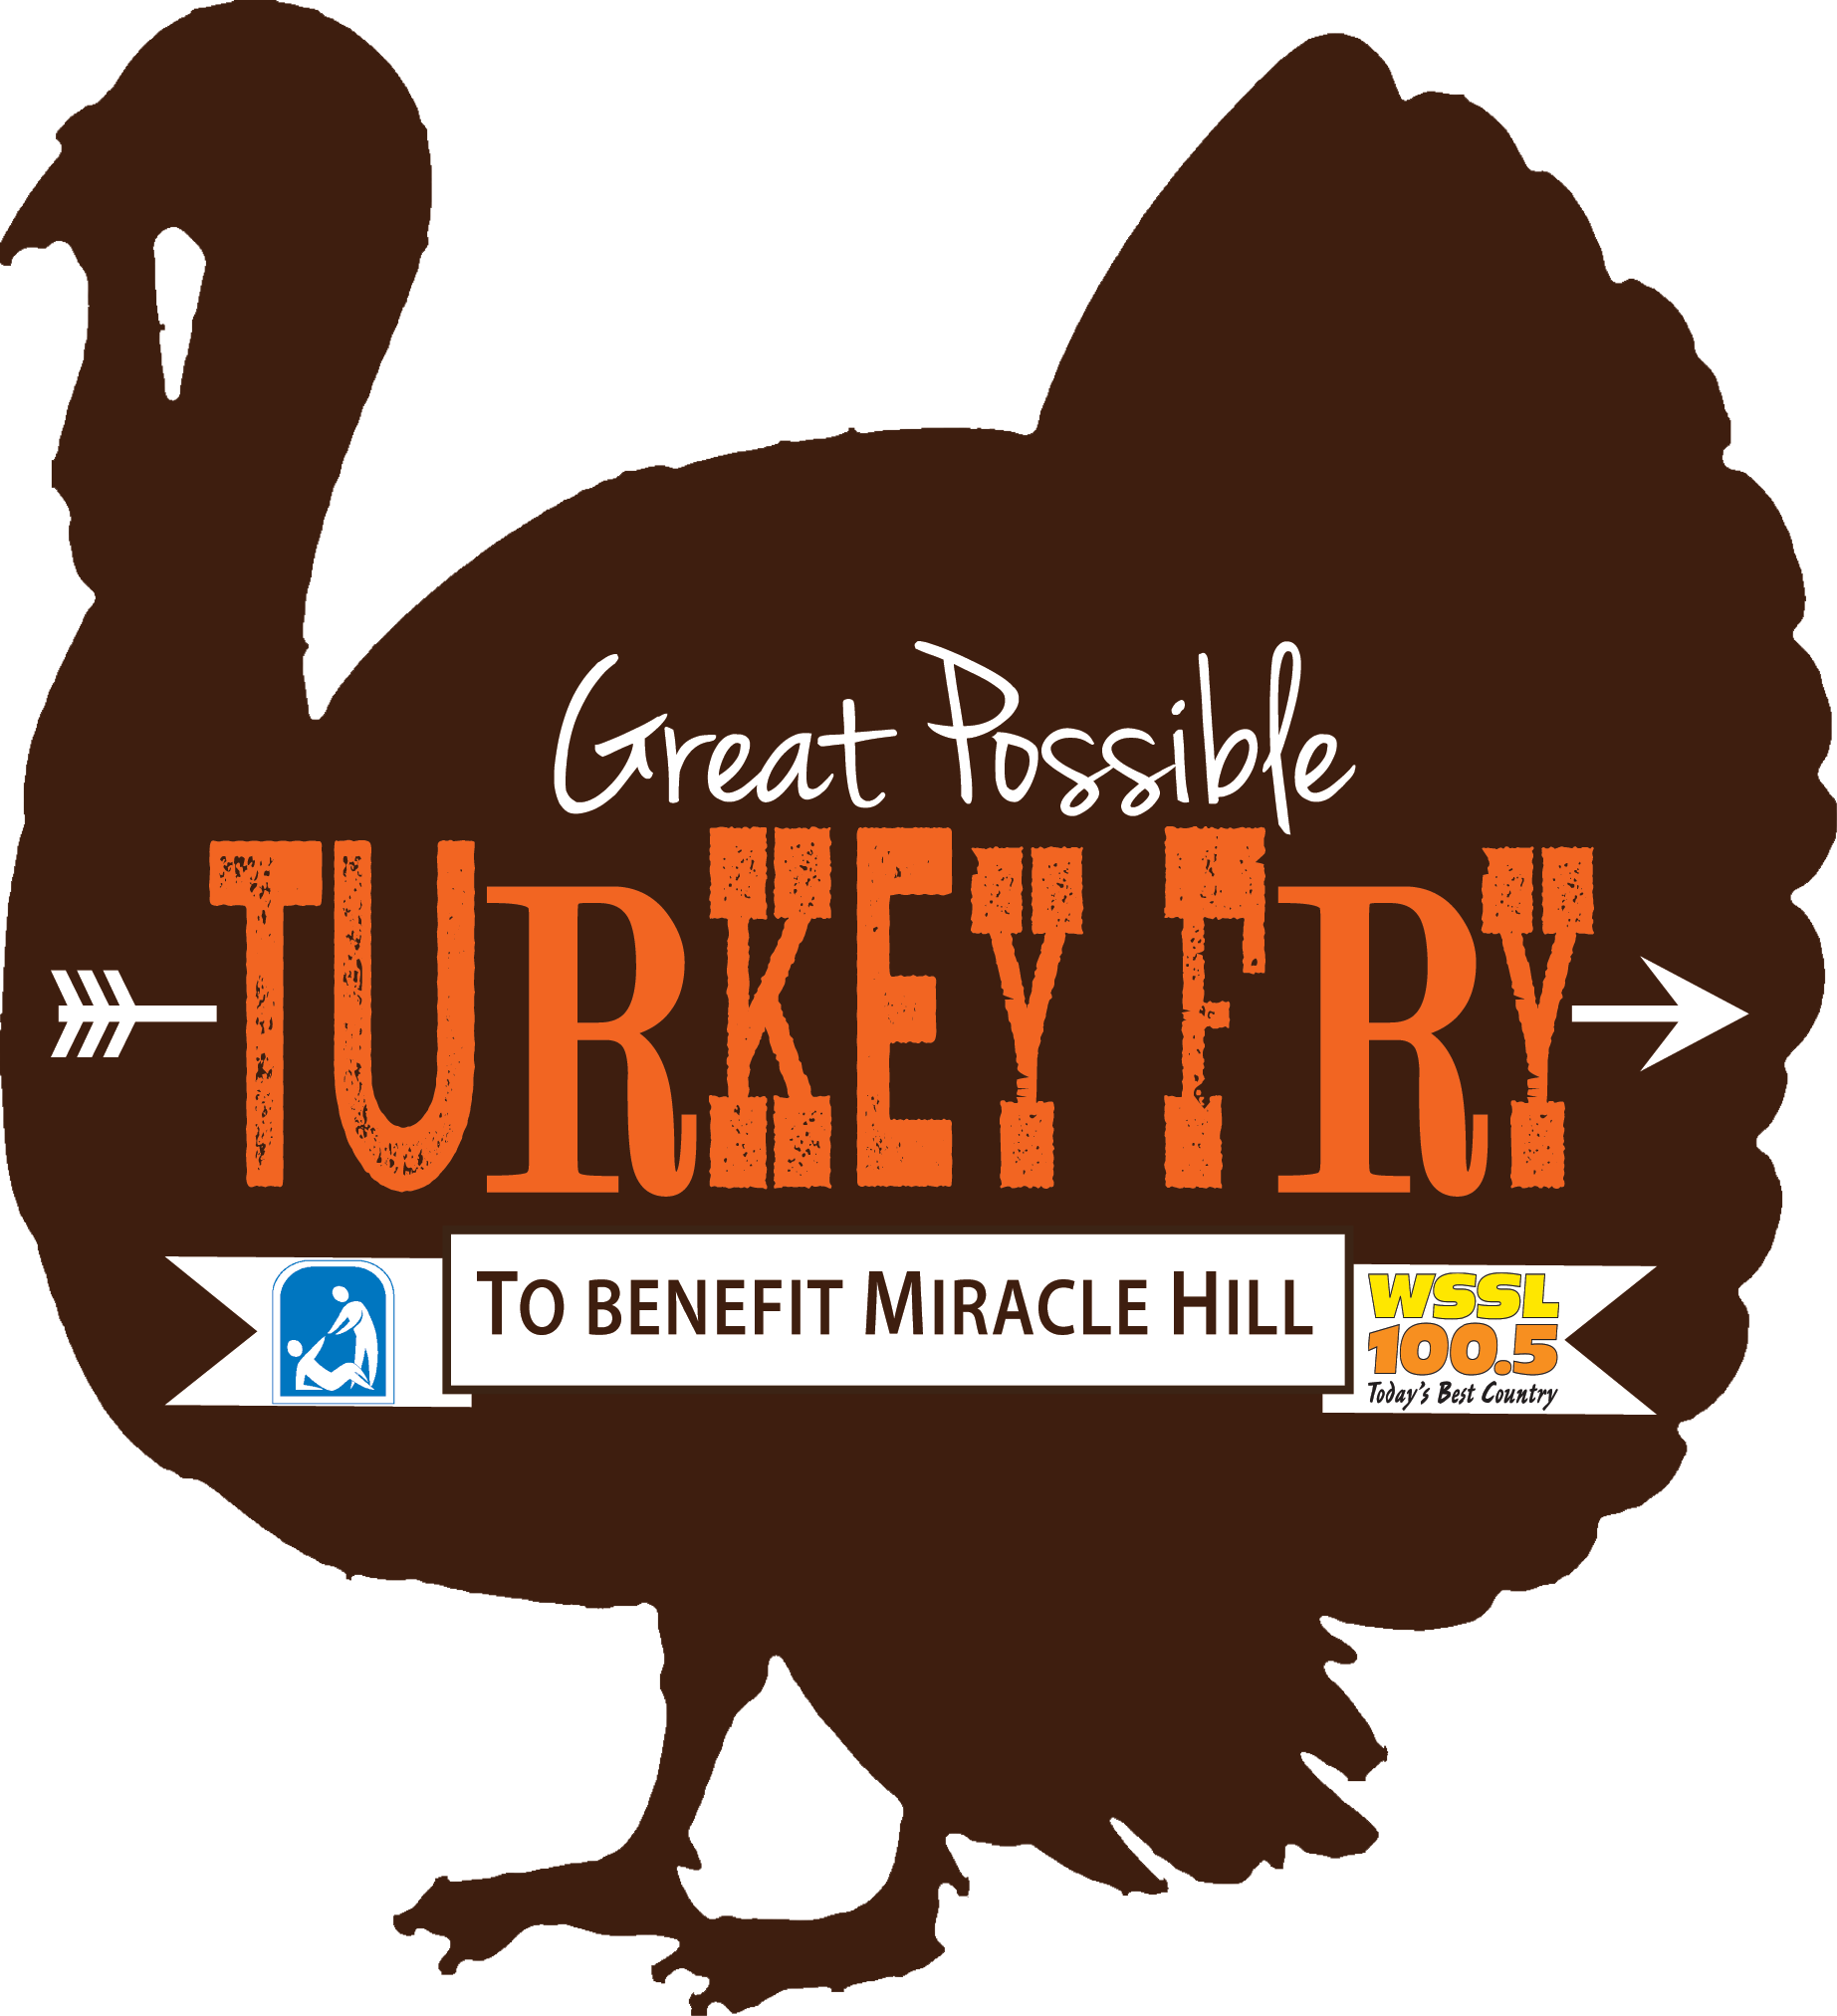 Turkey food drive clipart clipart stock Turkey Fry - Miracle Hill Ministries clipart stock